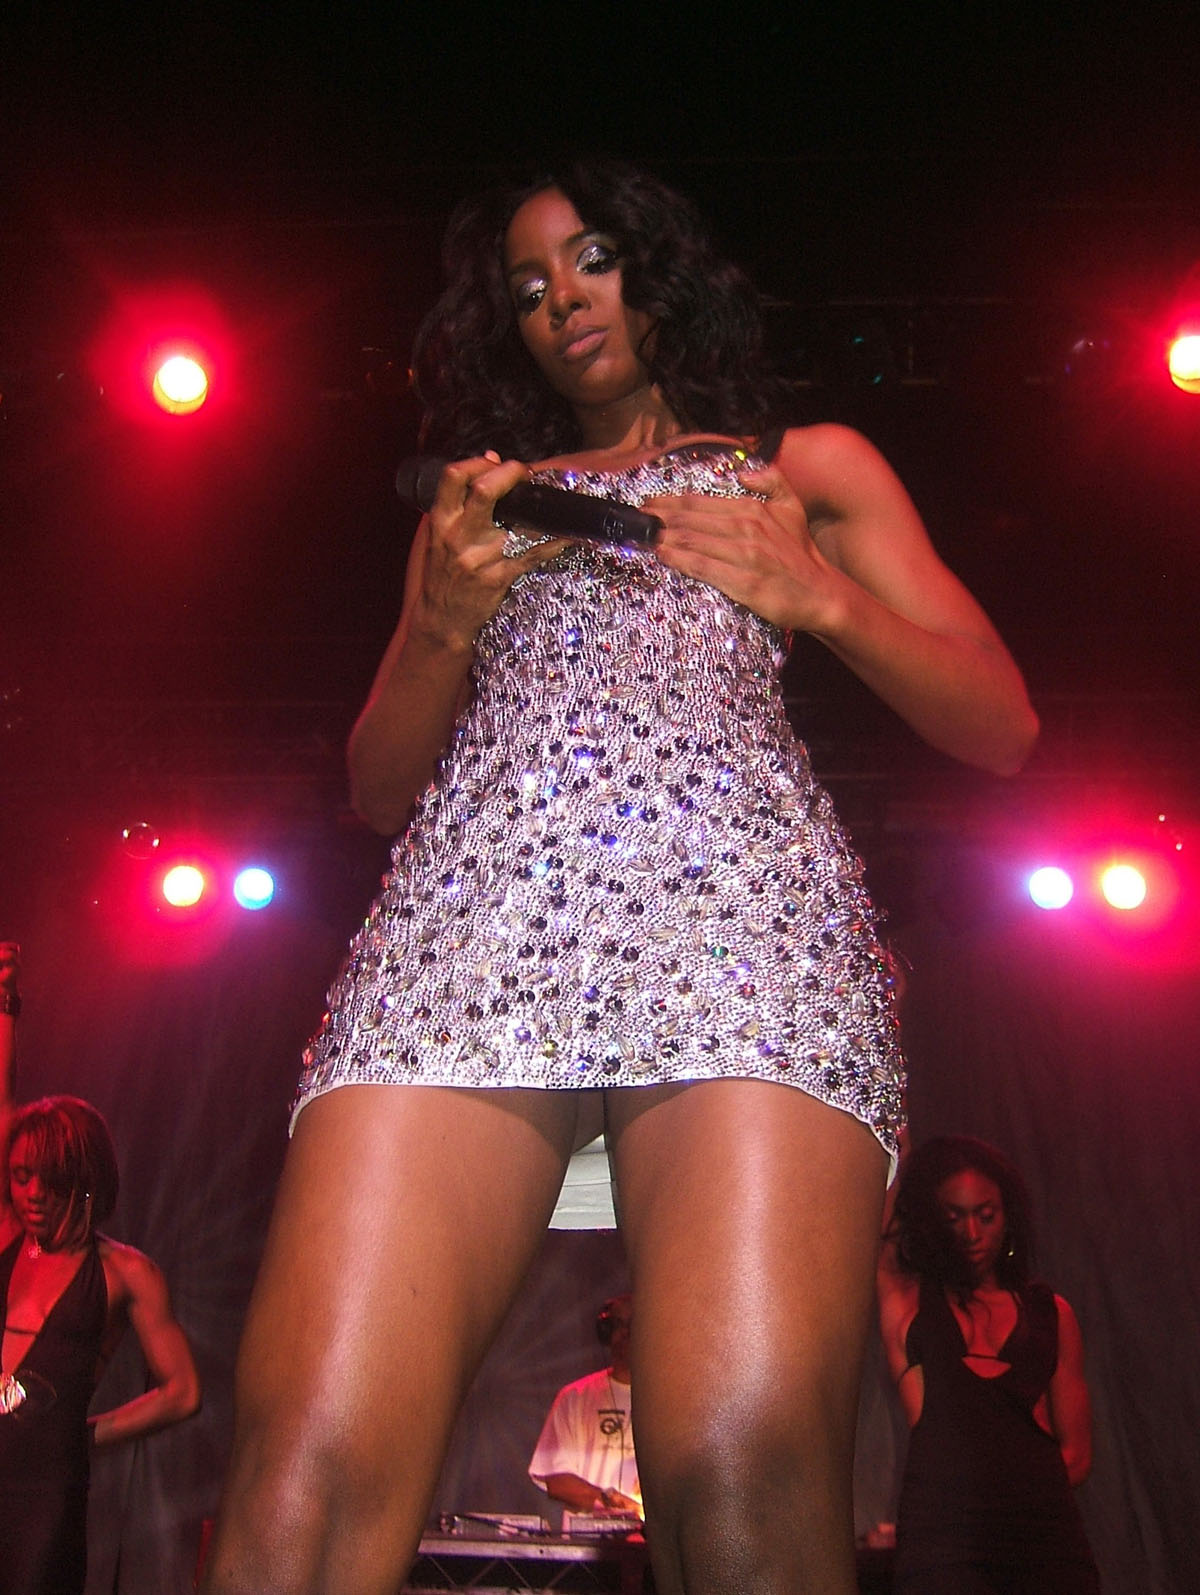 Kelly Rowland nude leaked photos | Naked body parts of ...